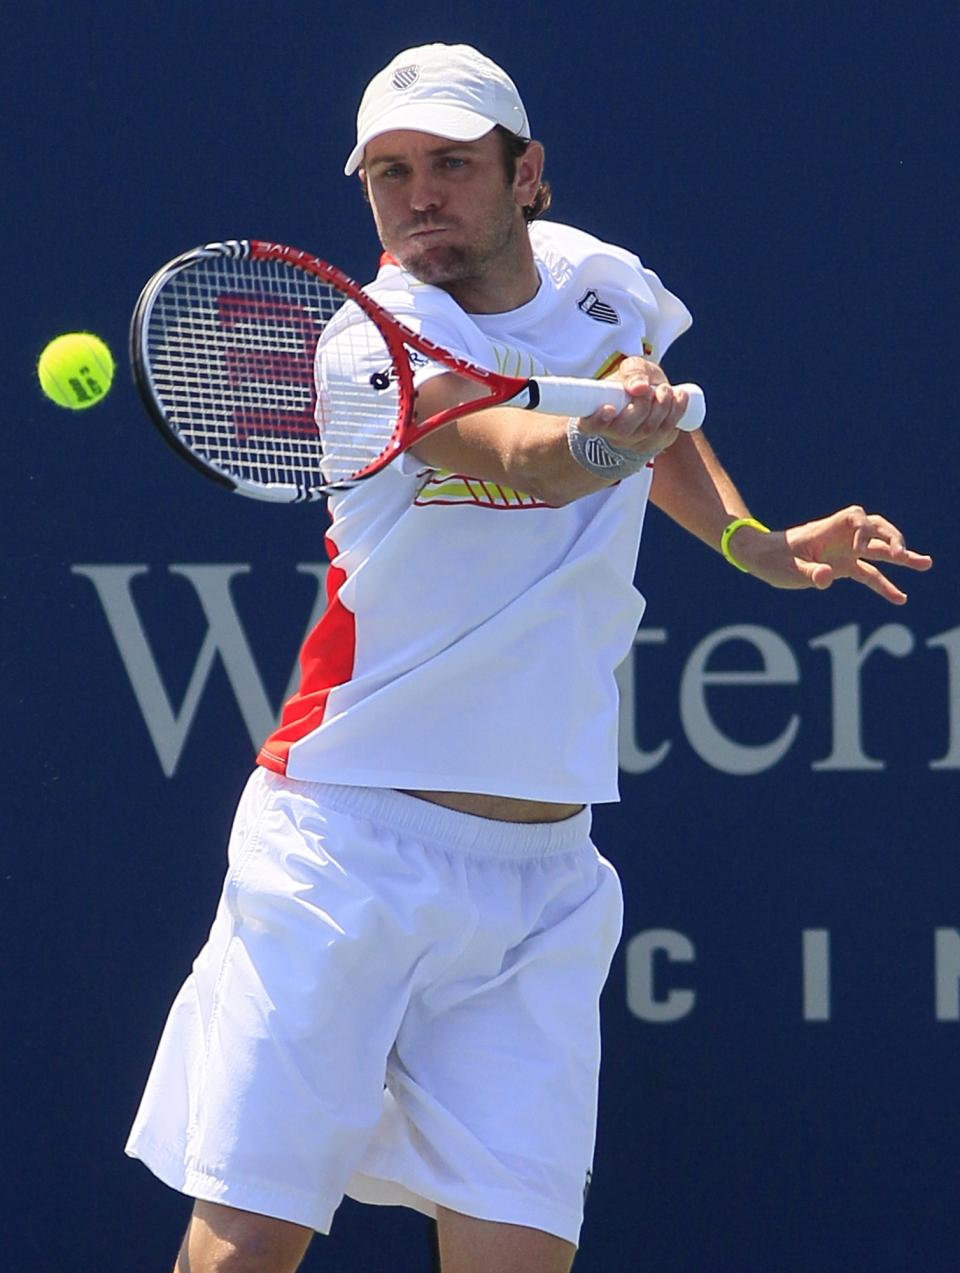 Mardy Fish hits a forehand shot against Radek Stepanek, from the Czech Republic, during a match at the Western & Southern Open tennis tournament, Thursday, Aug. 16, 2012, in Mason, Ohio. (AP Photo/Al Behrman)